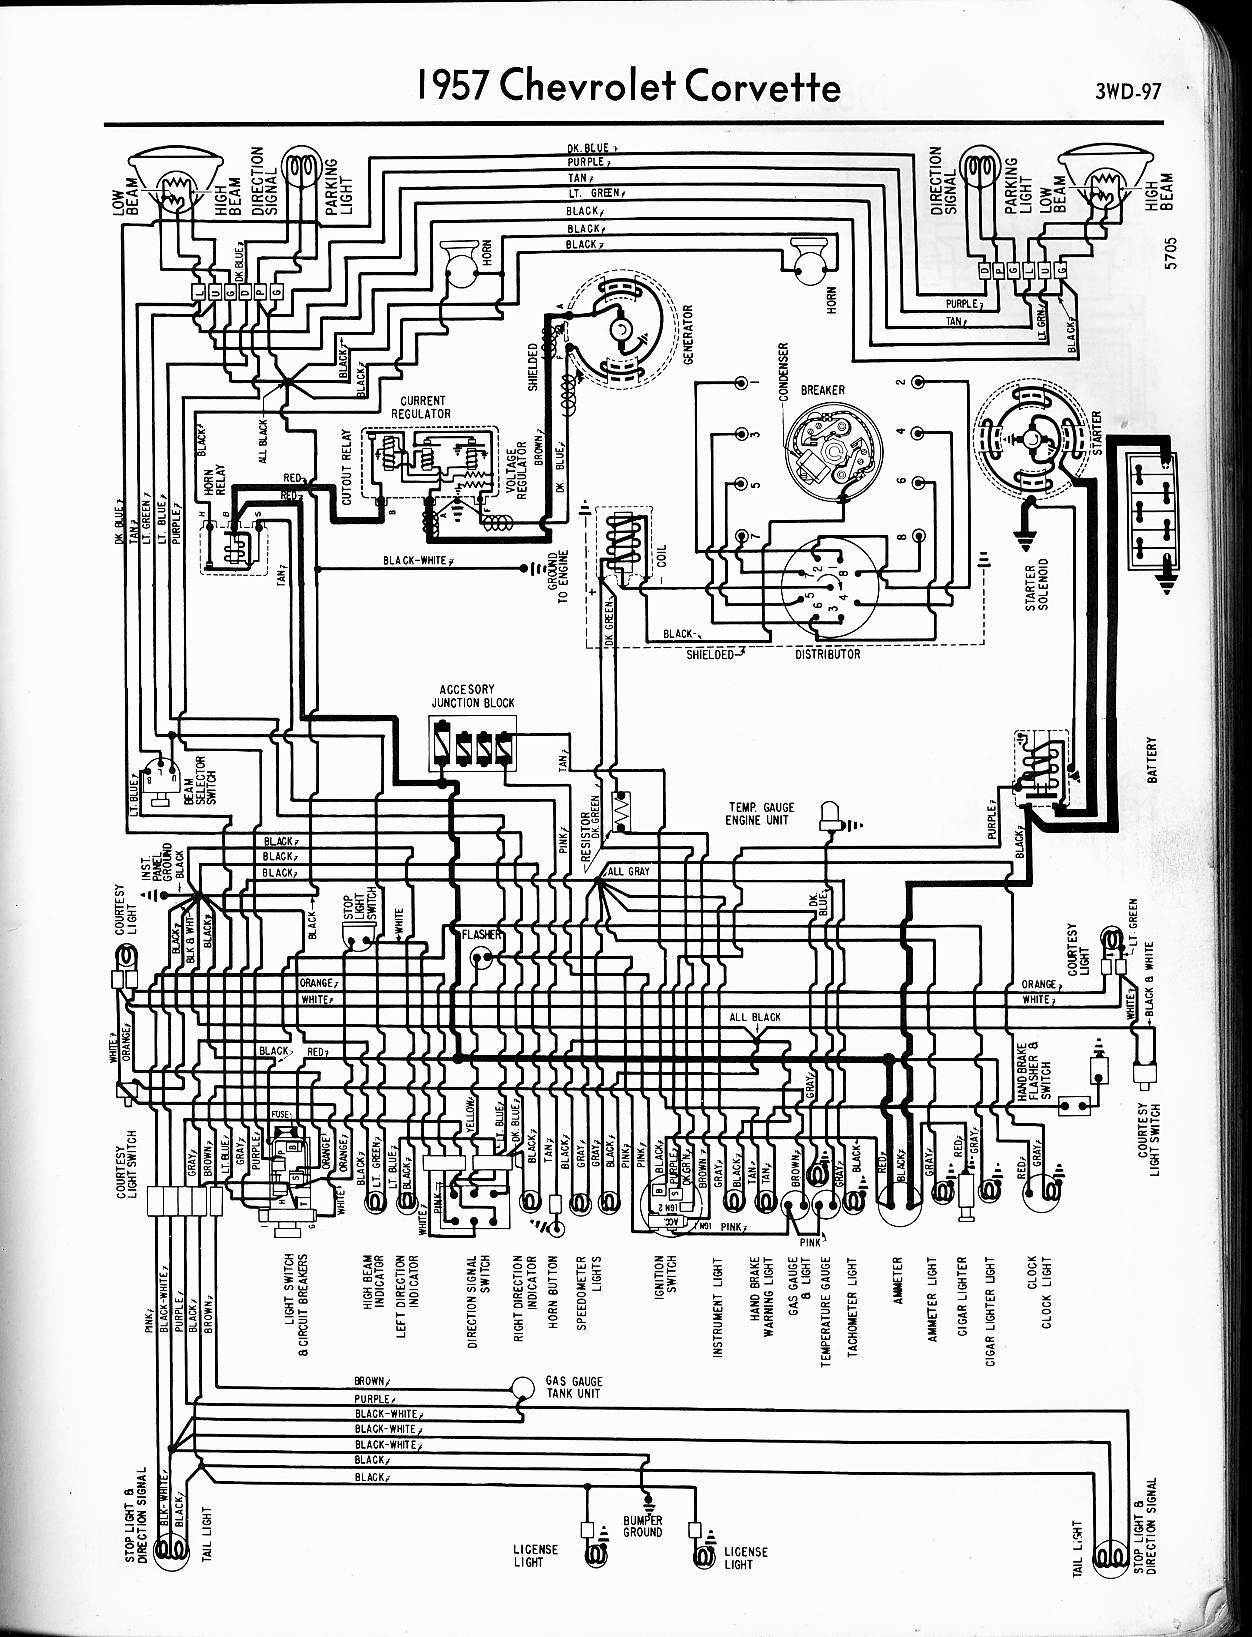 57 chevy wiring harness 1957 chevy wiring harness for fuel injection rh parsplus co 1957 chevy generator wiring diagram 1957 chevy horn wiring diagram